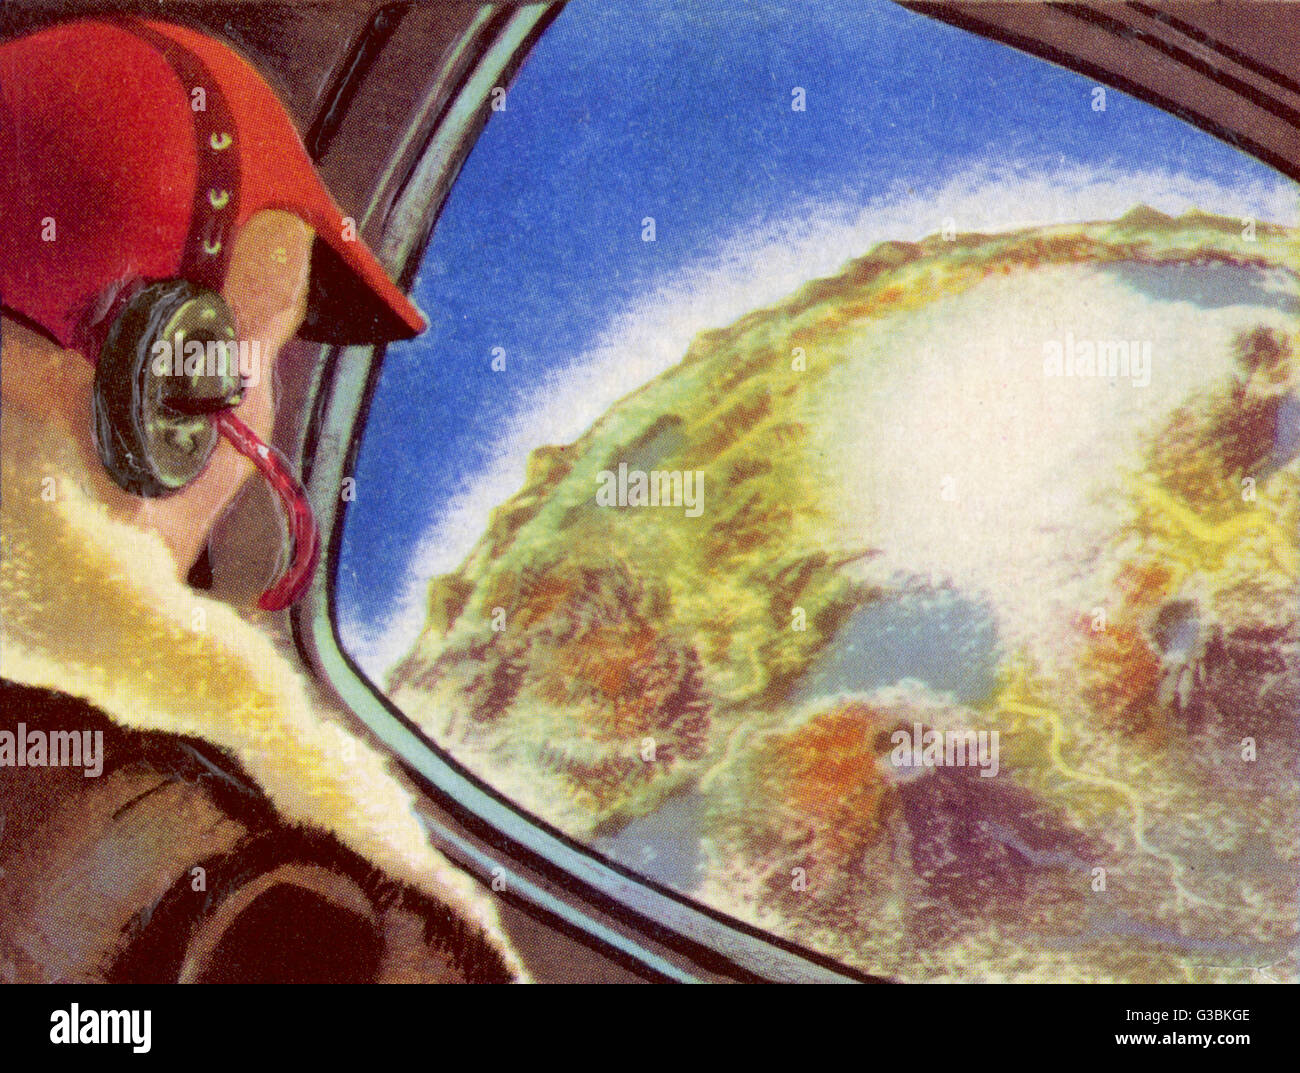 INTERPLANETARY ROCKET  APPROACHES THE PLANET MARS        Date: circa 1950 - Stock Image